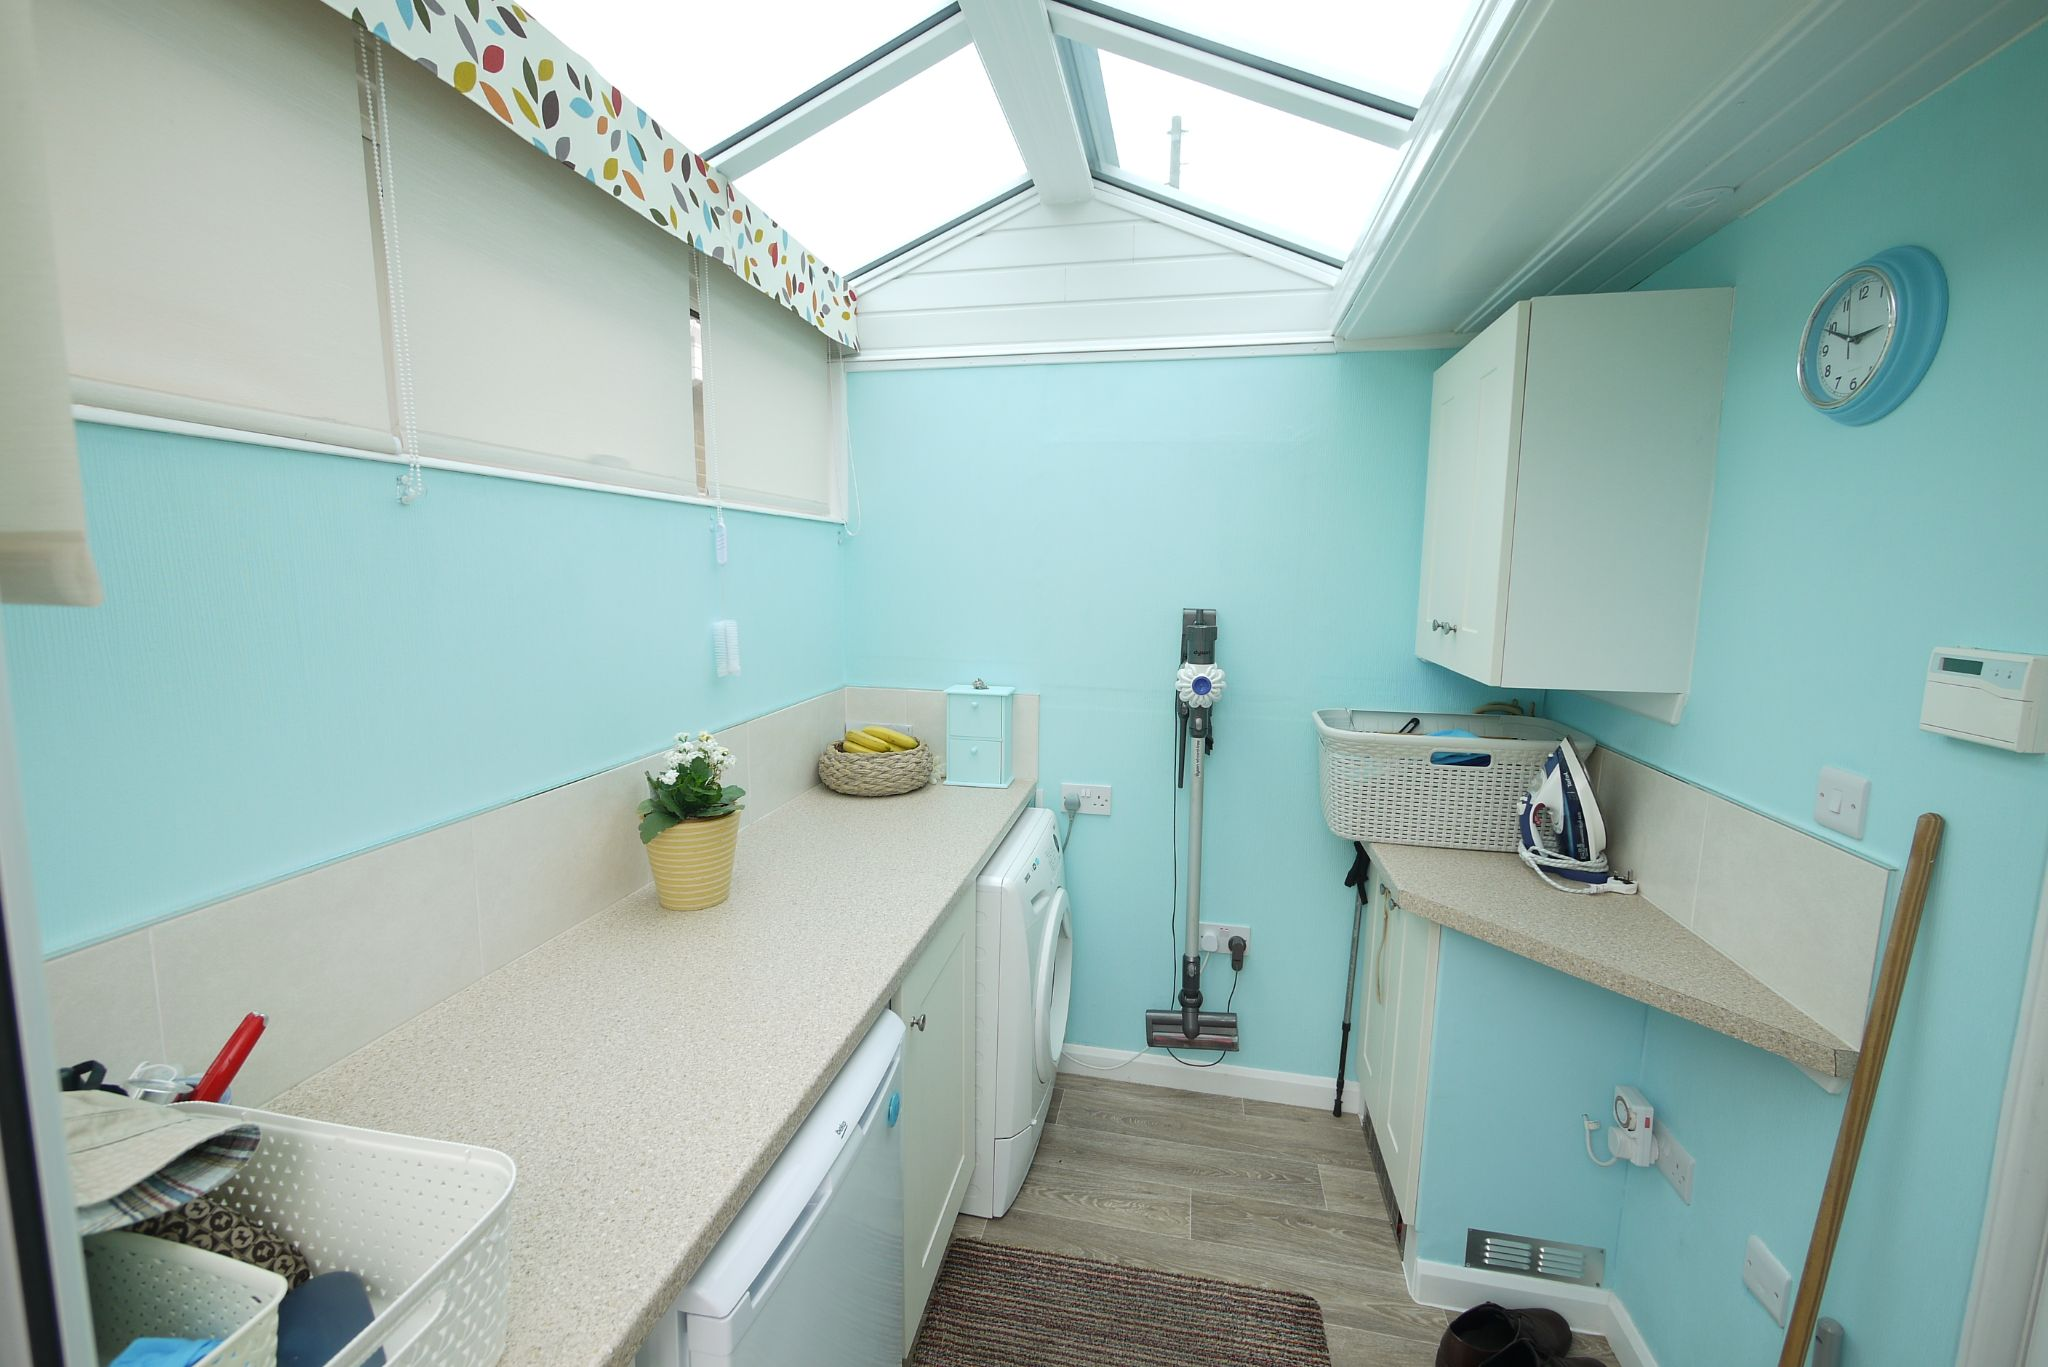 2 bedroom detached bungalow SSTC in Brighouse - Utility Room.